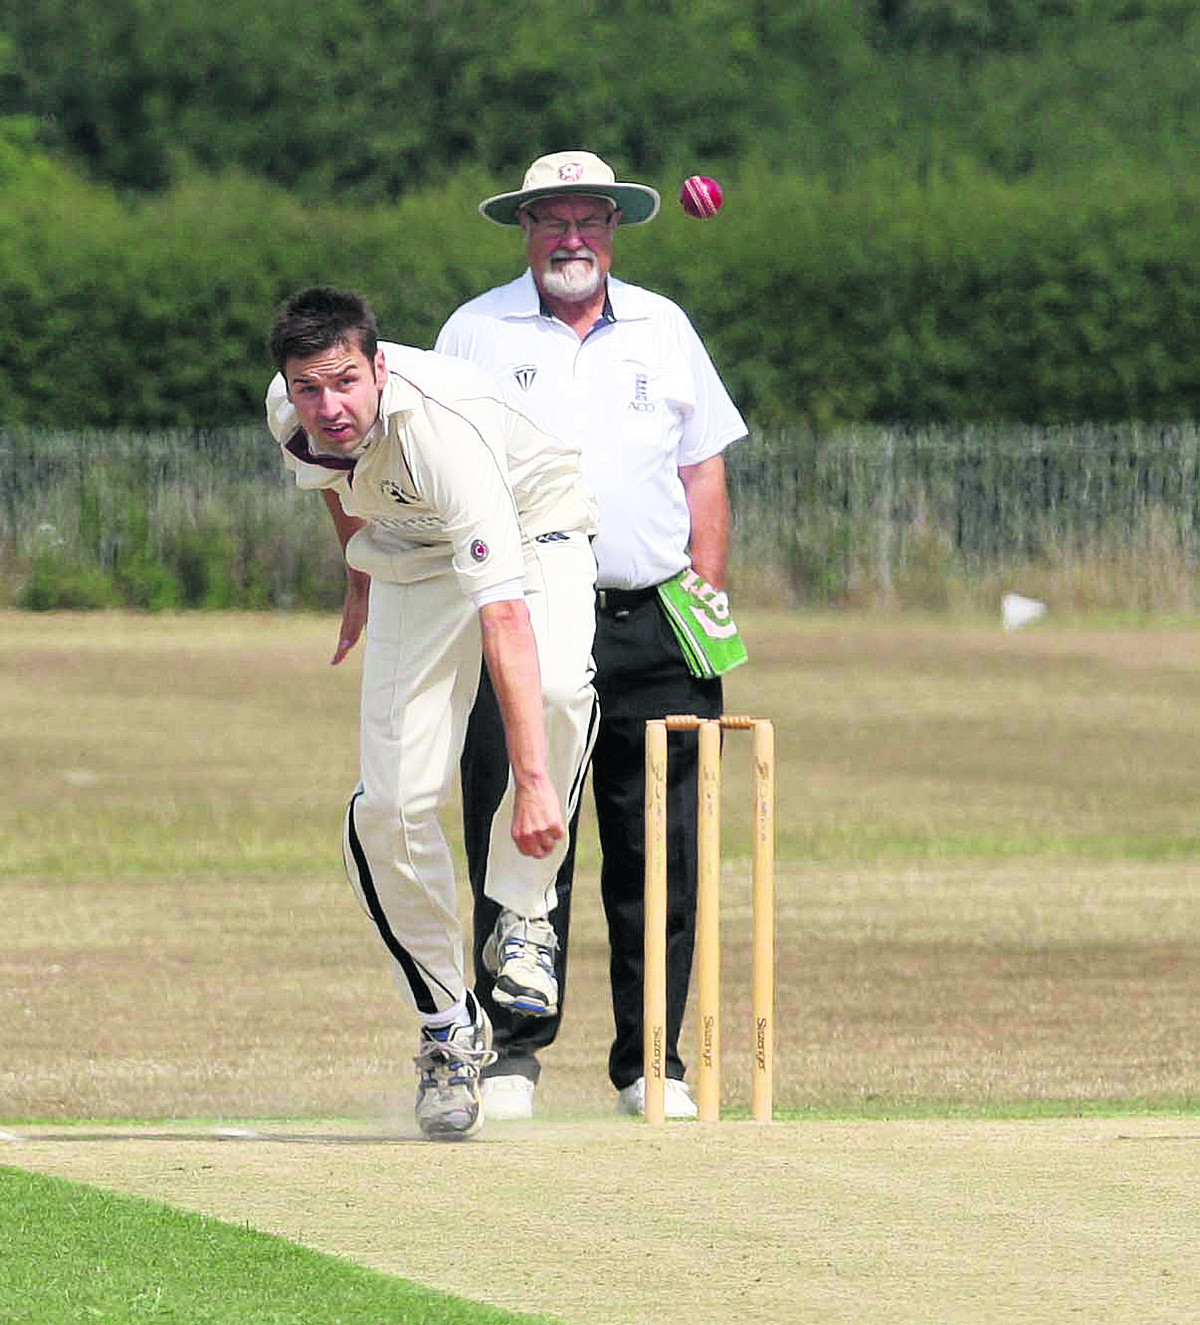 Liam Manley took five wickets in six overs